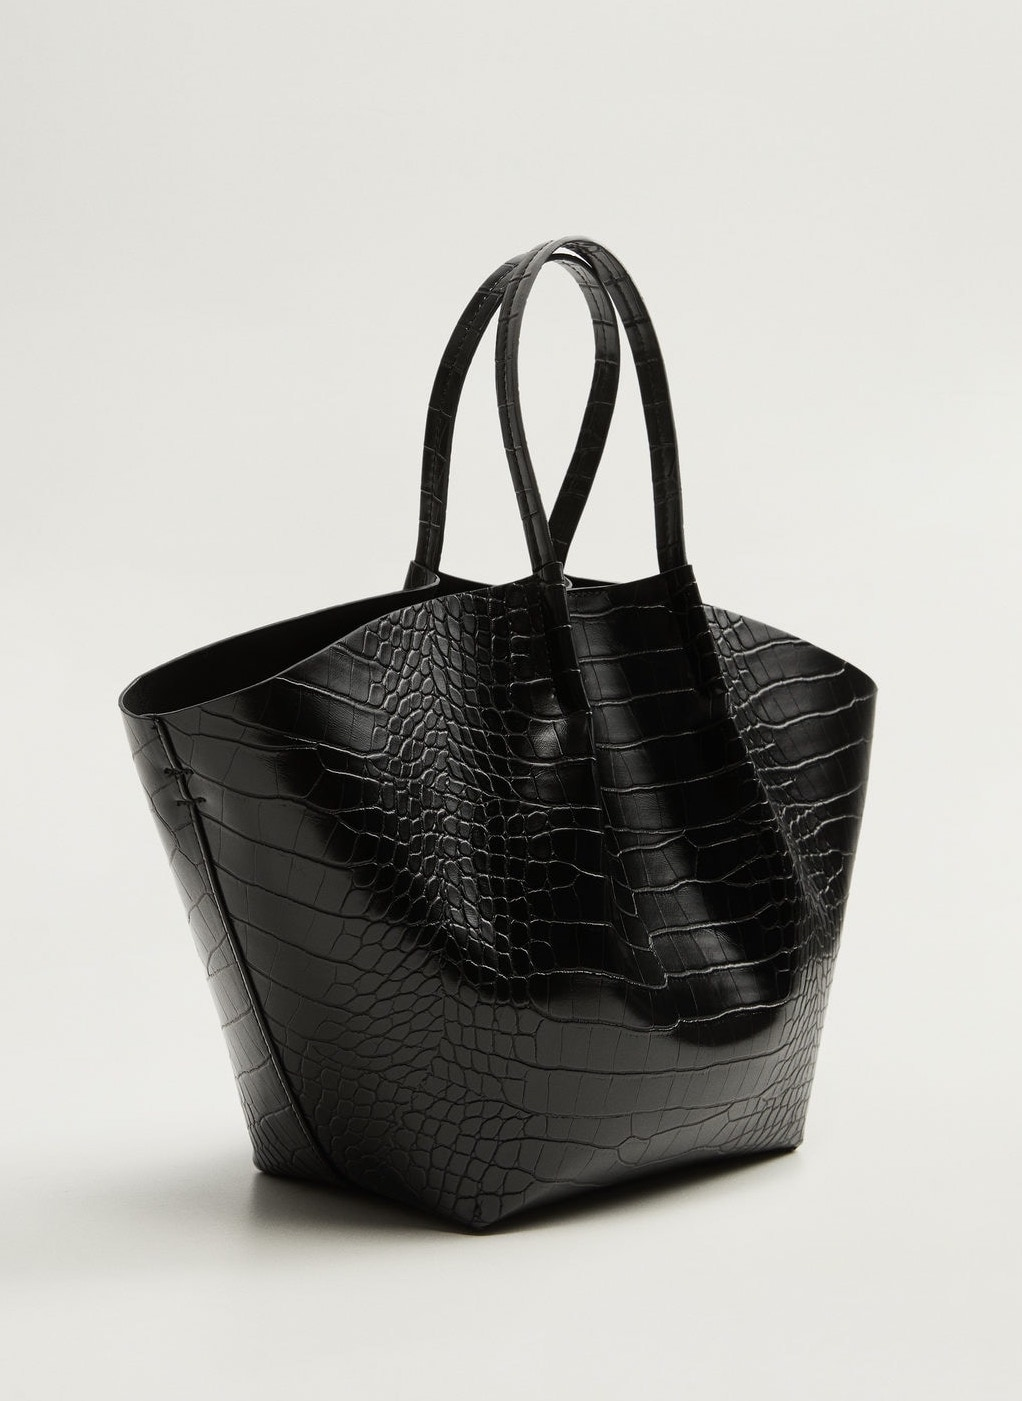 This Under-$100 Croc-Effect Tote Bag Is Incredibly Chic